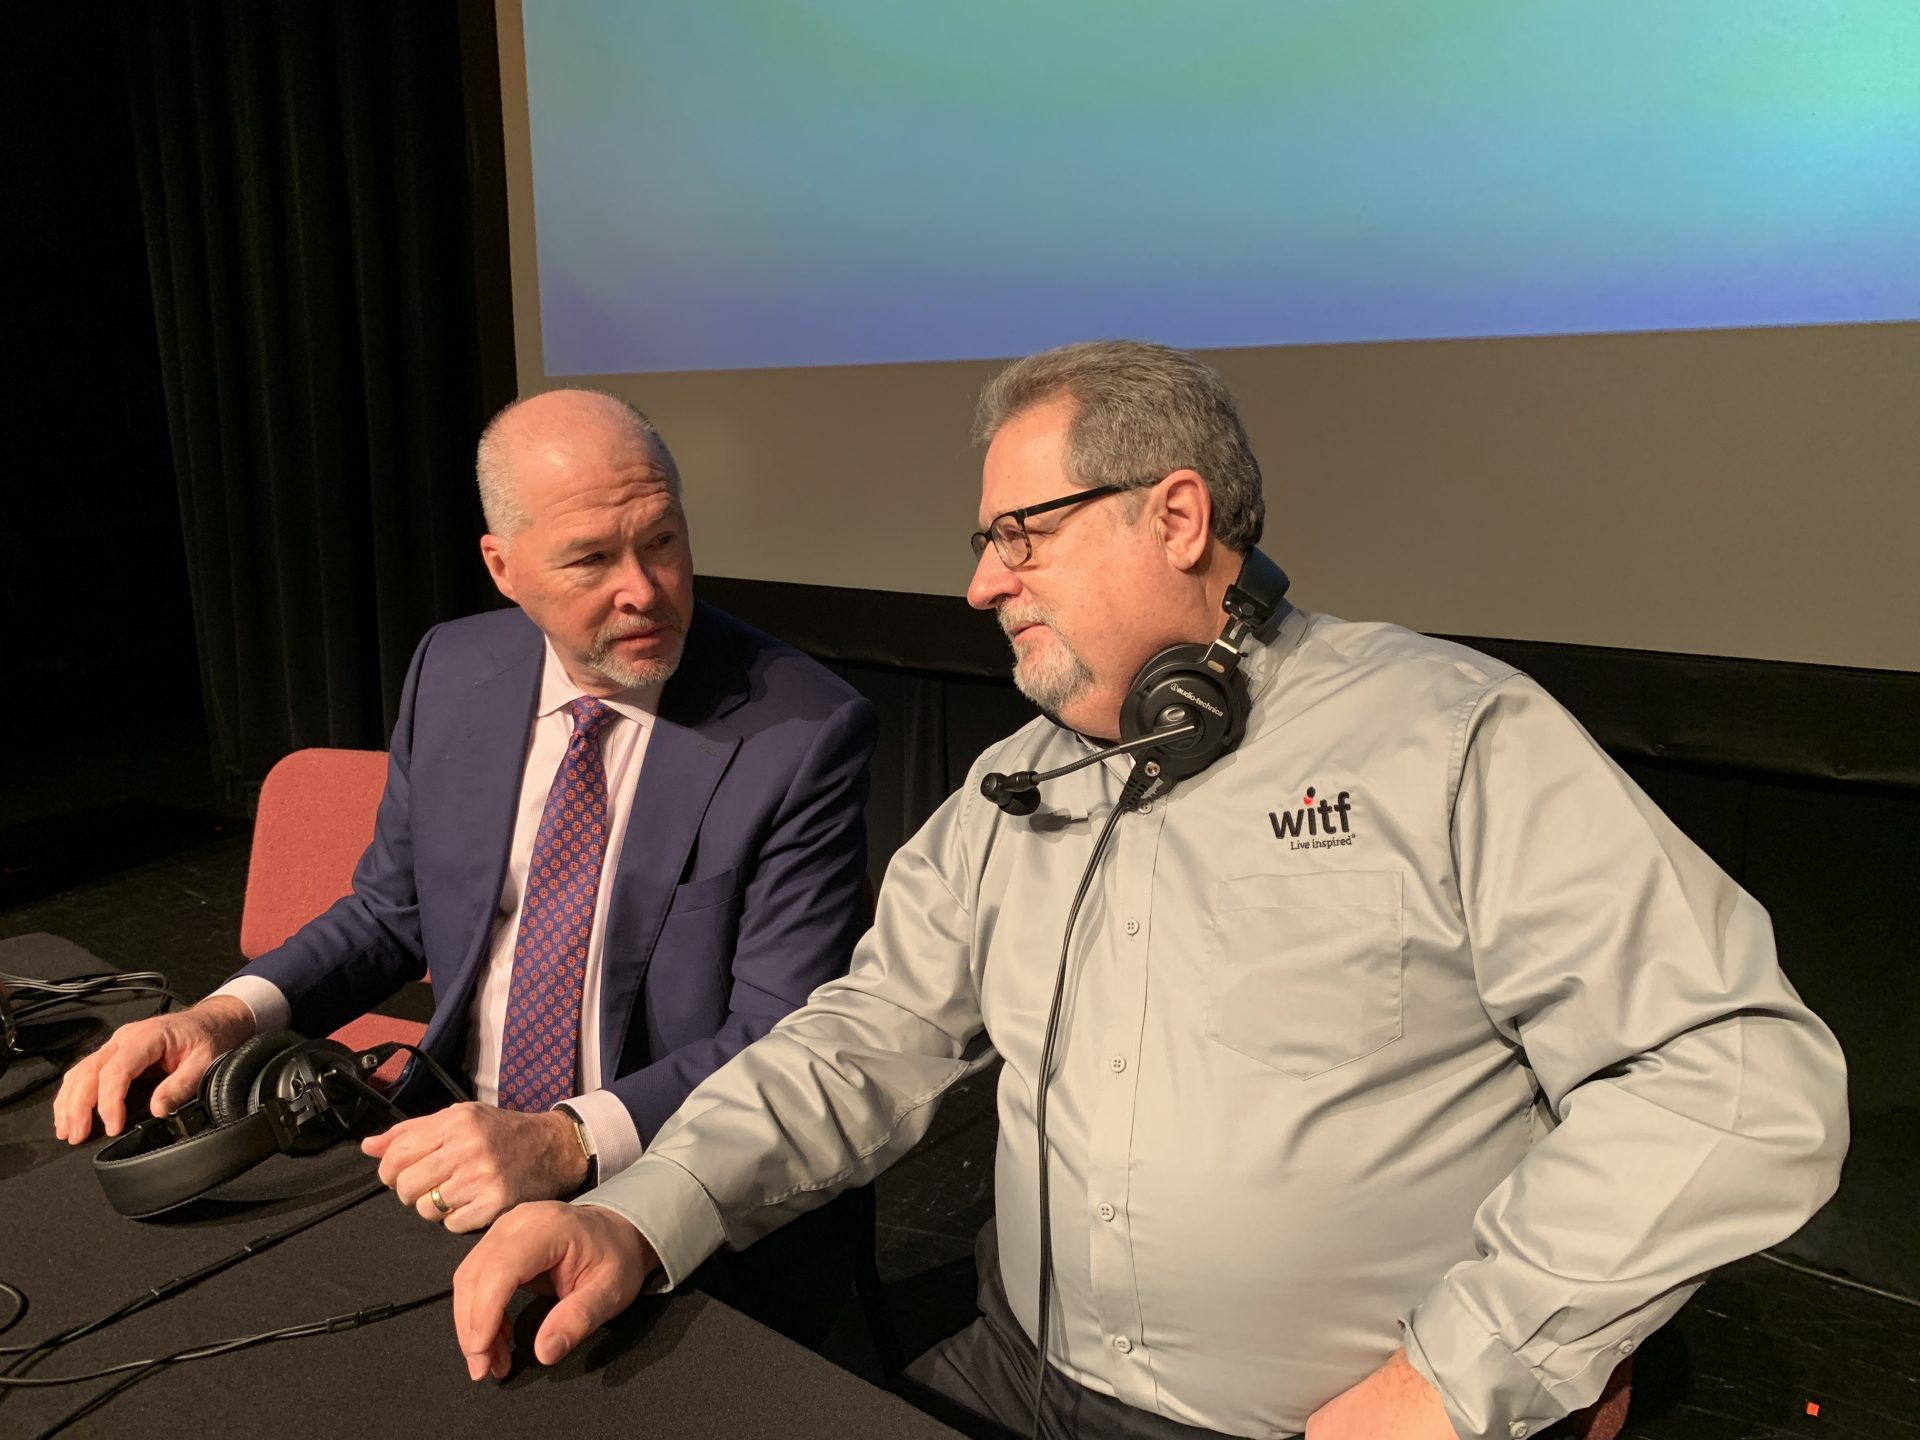 Gene Barr, President and CEO the Pennsylvania Chamber of Business and Industry, chats with Smart Talk host Scott LaMar before their segment about the demand for a technically skilled workforce.